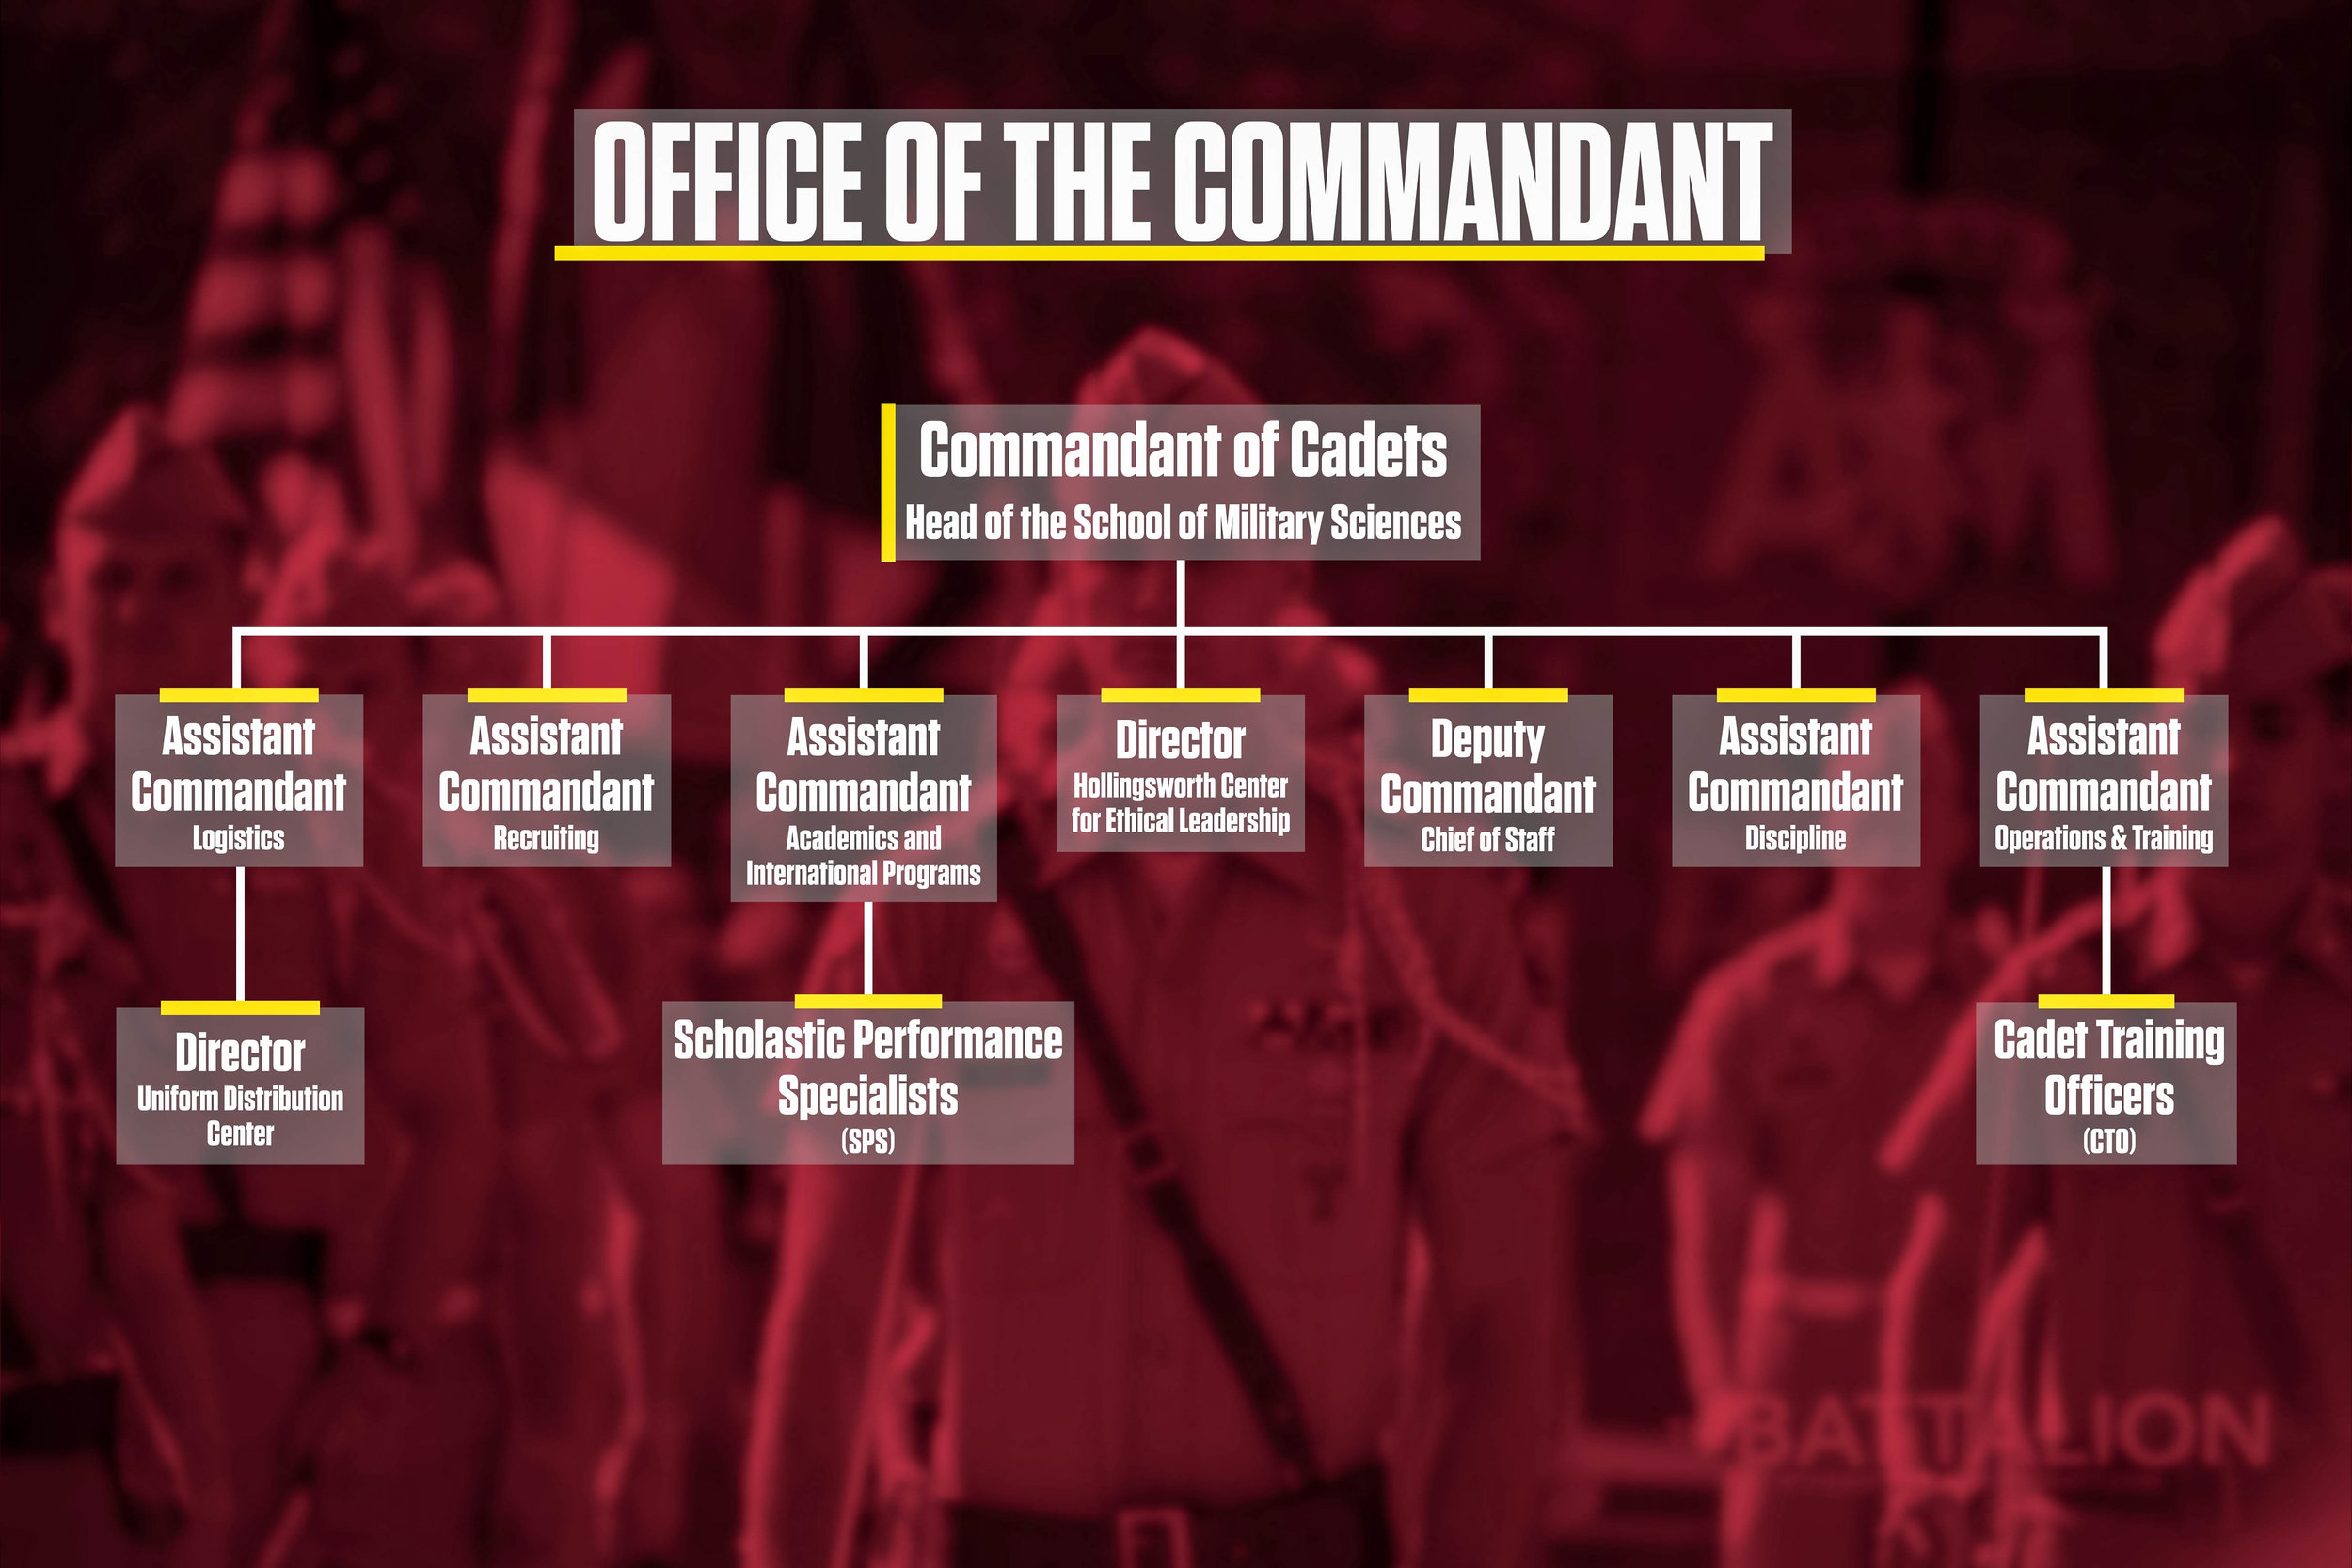 Corps Hierarchy Office of the Commandant v2 copy.jpg